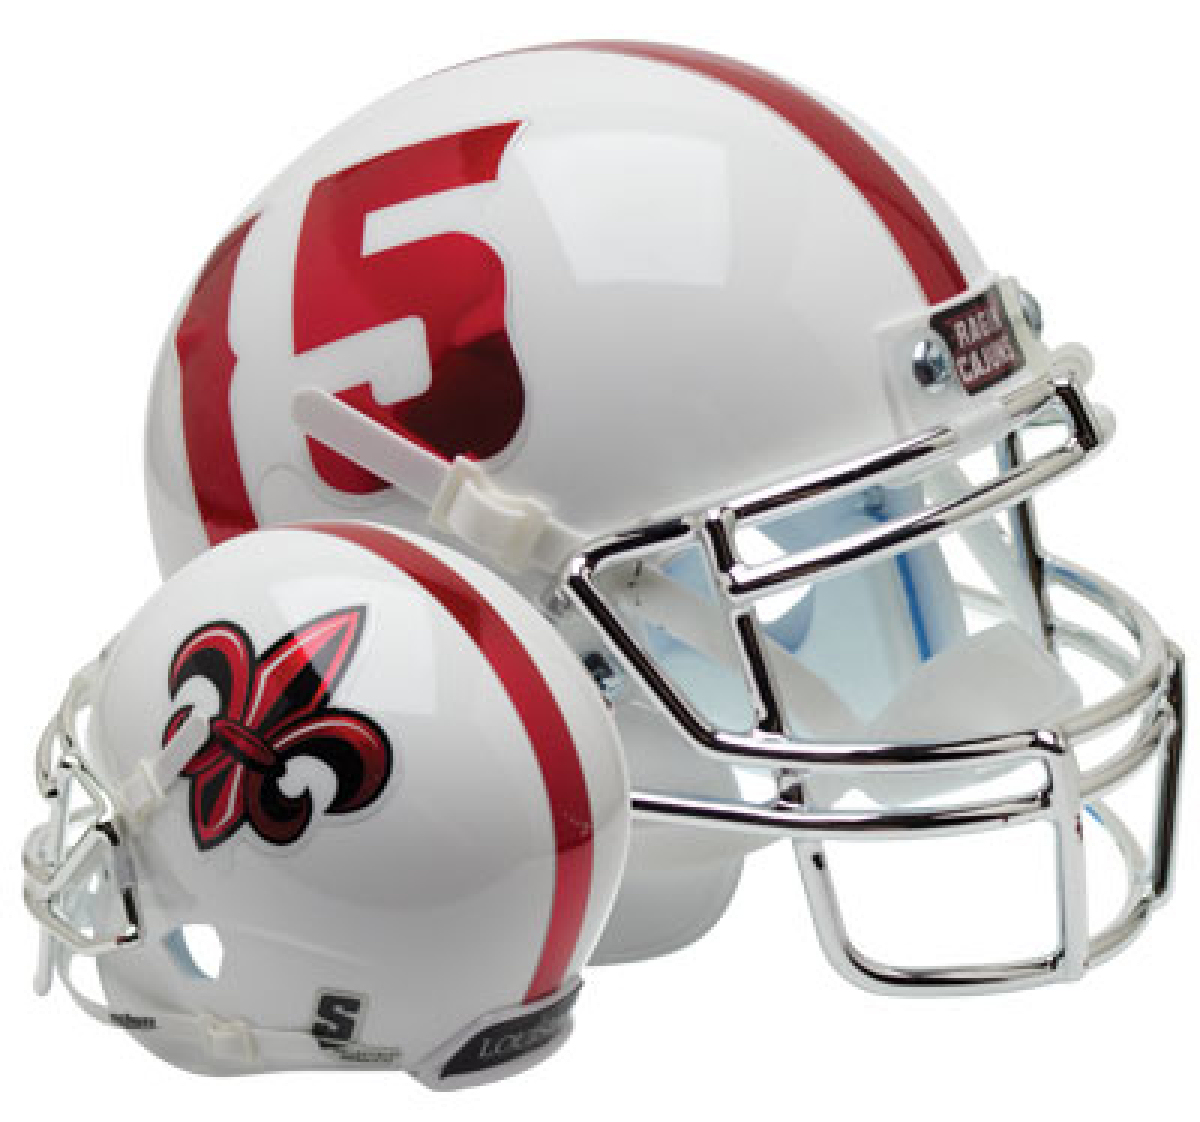 Louisiana (Lafayette) Ragin Cajuns Authentic College XP Football Helmet Schutt <B>White with Chrome Mask</B>